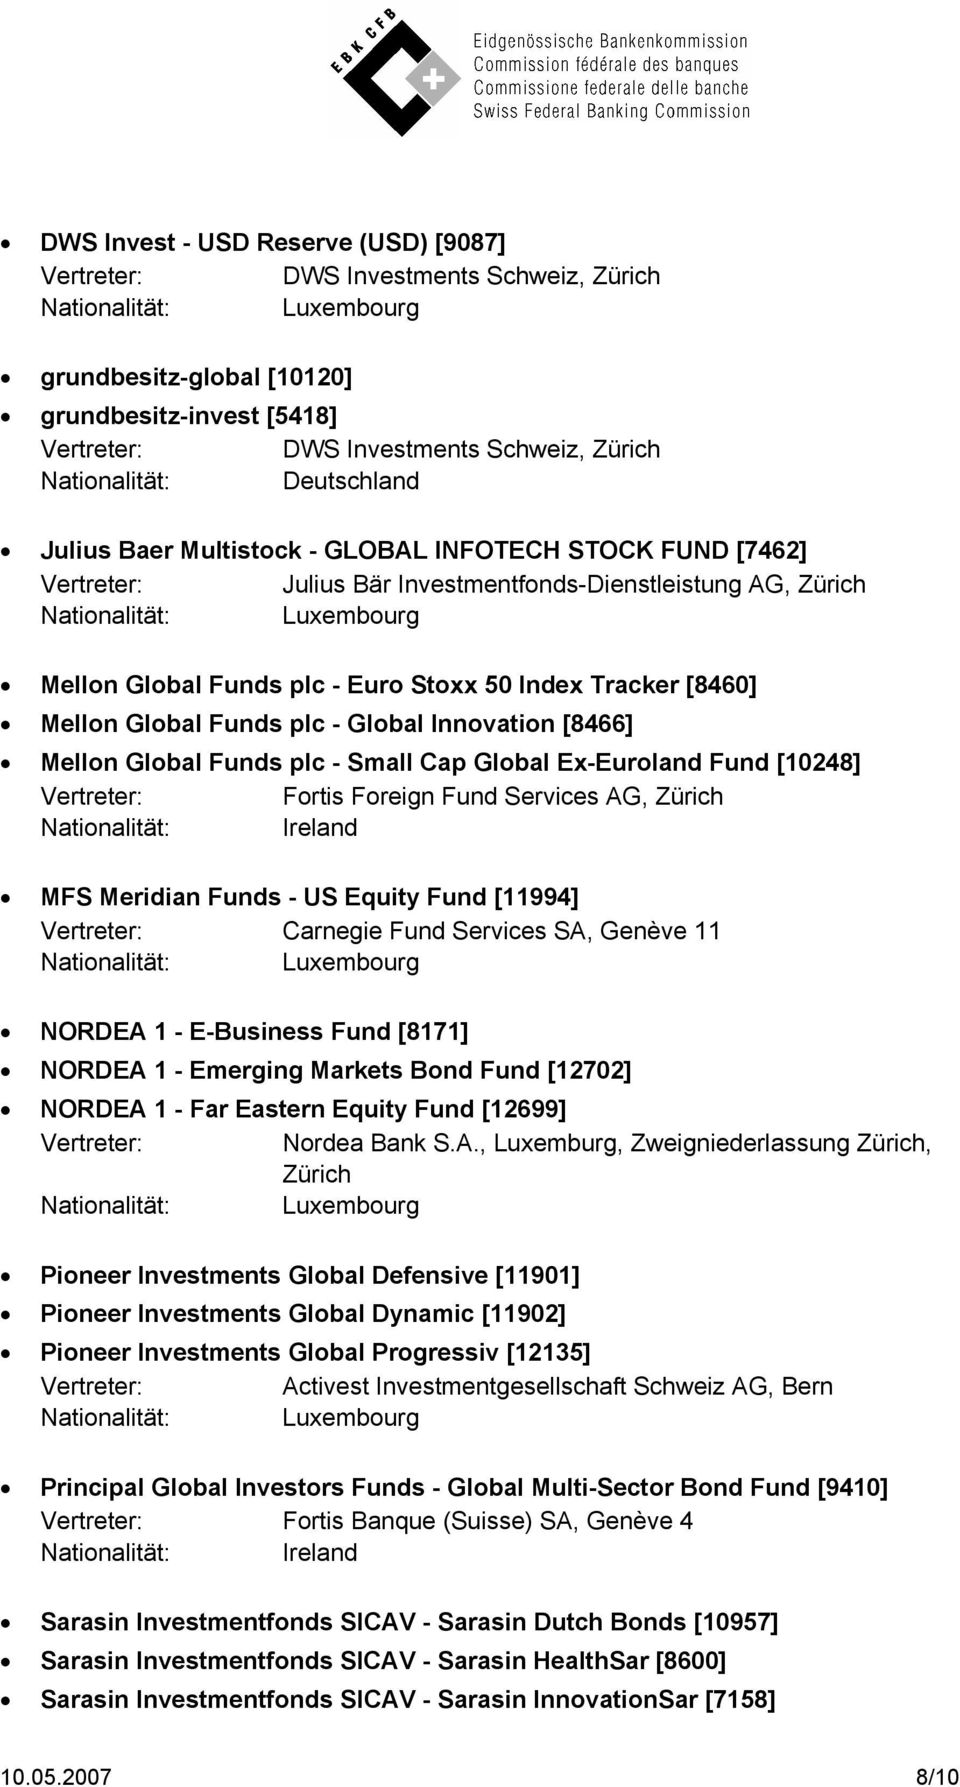 Global Funds plc - Small Cap Global Ex-Euroland Fund [10248] Fortis Foreign Fund Services AG, Zürich Ireland MFS Meridian Funds - US Equity Fund [11994] Carnegie Fund Services SA, Genève 11 NORDEA 1